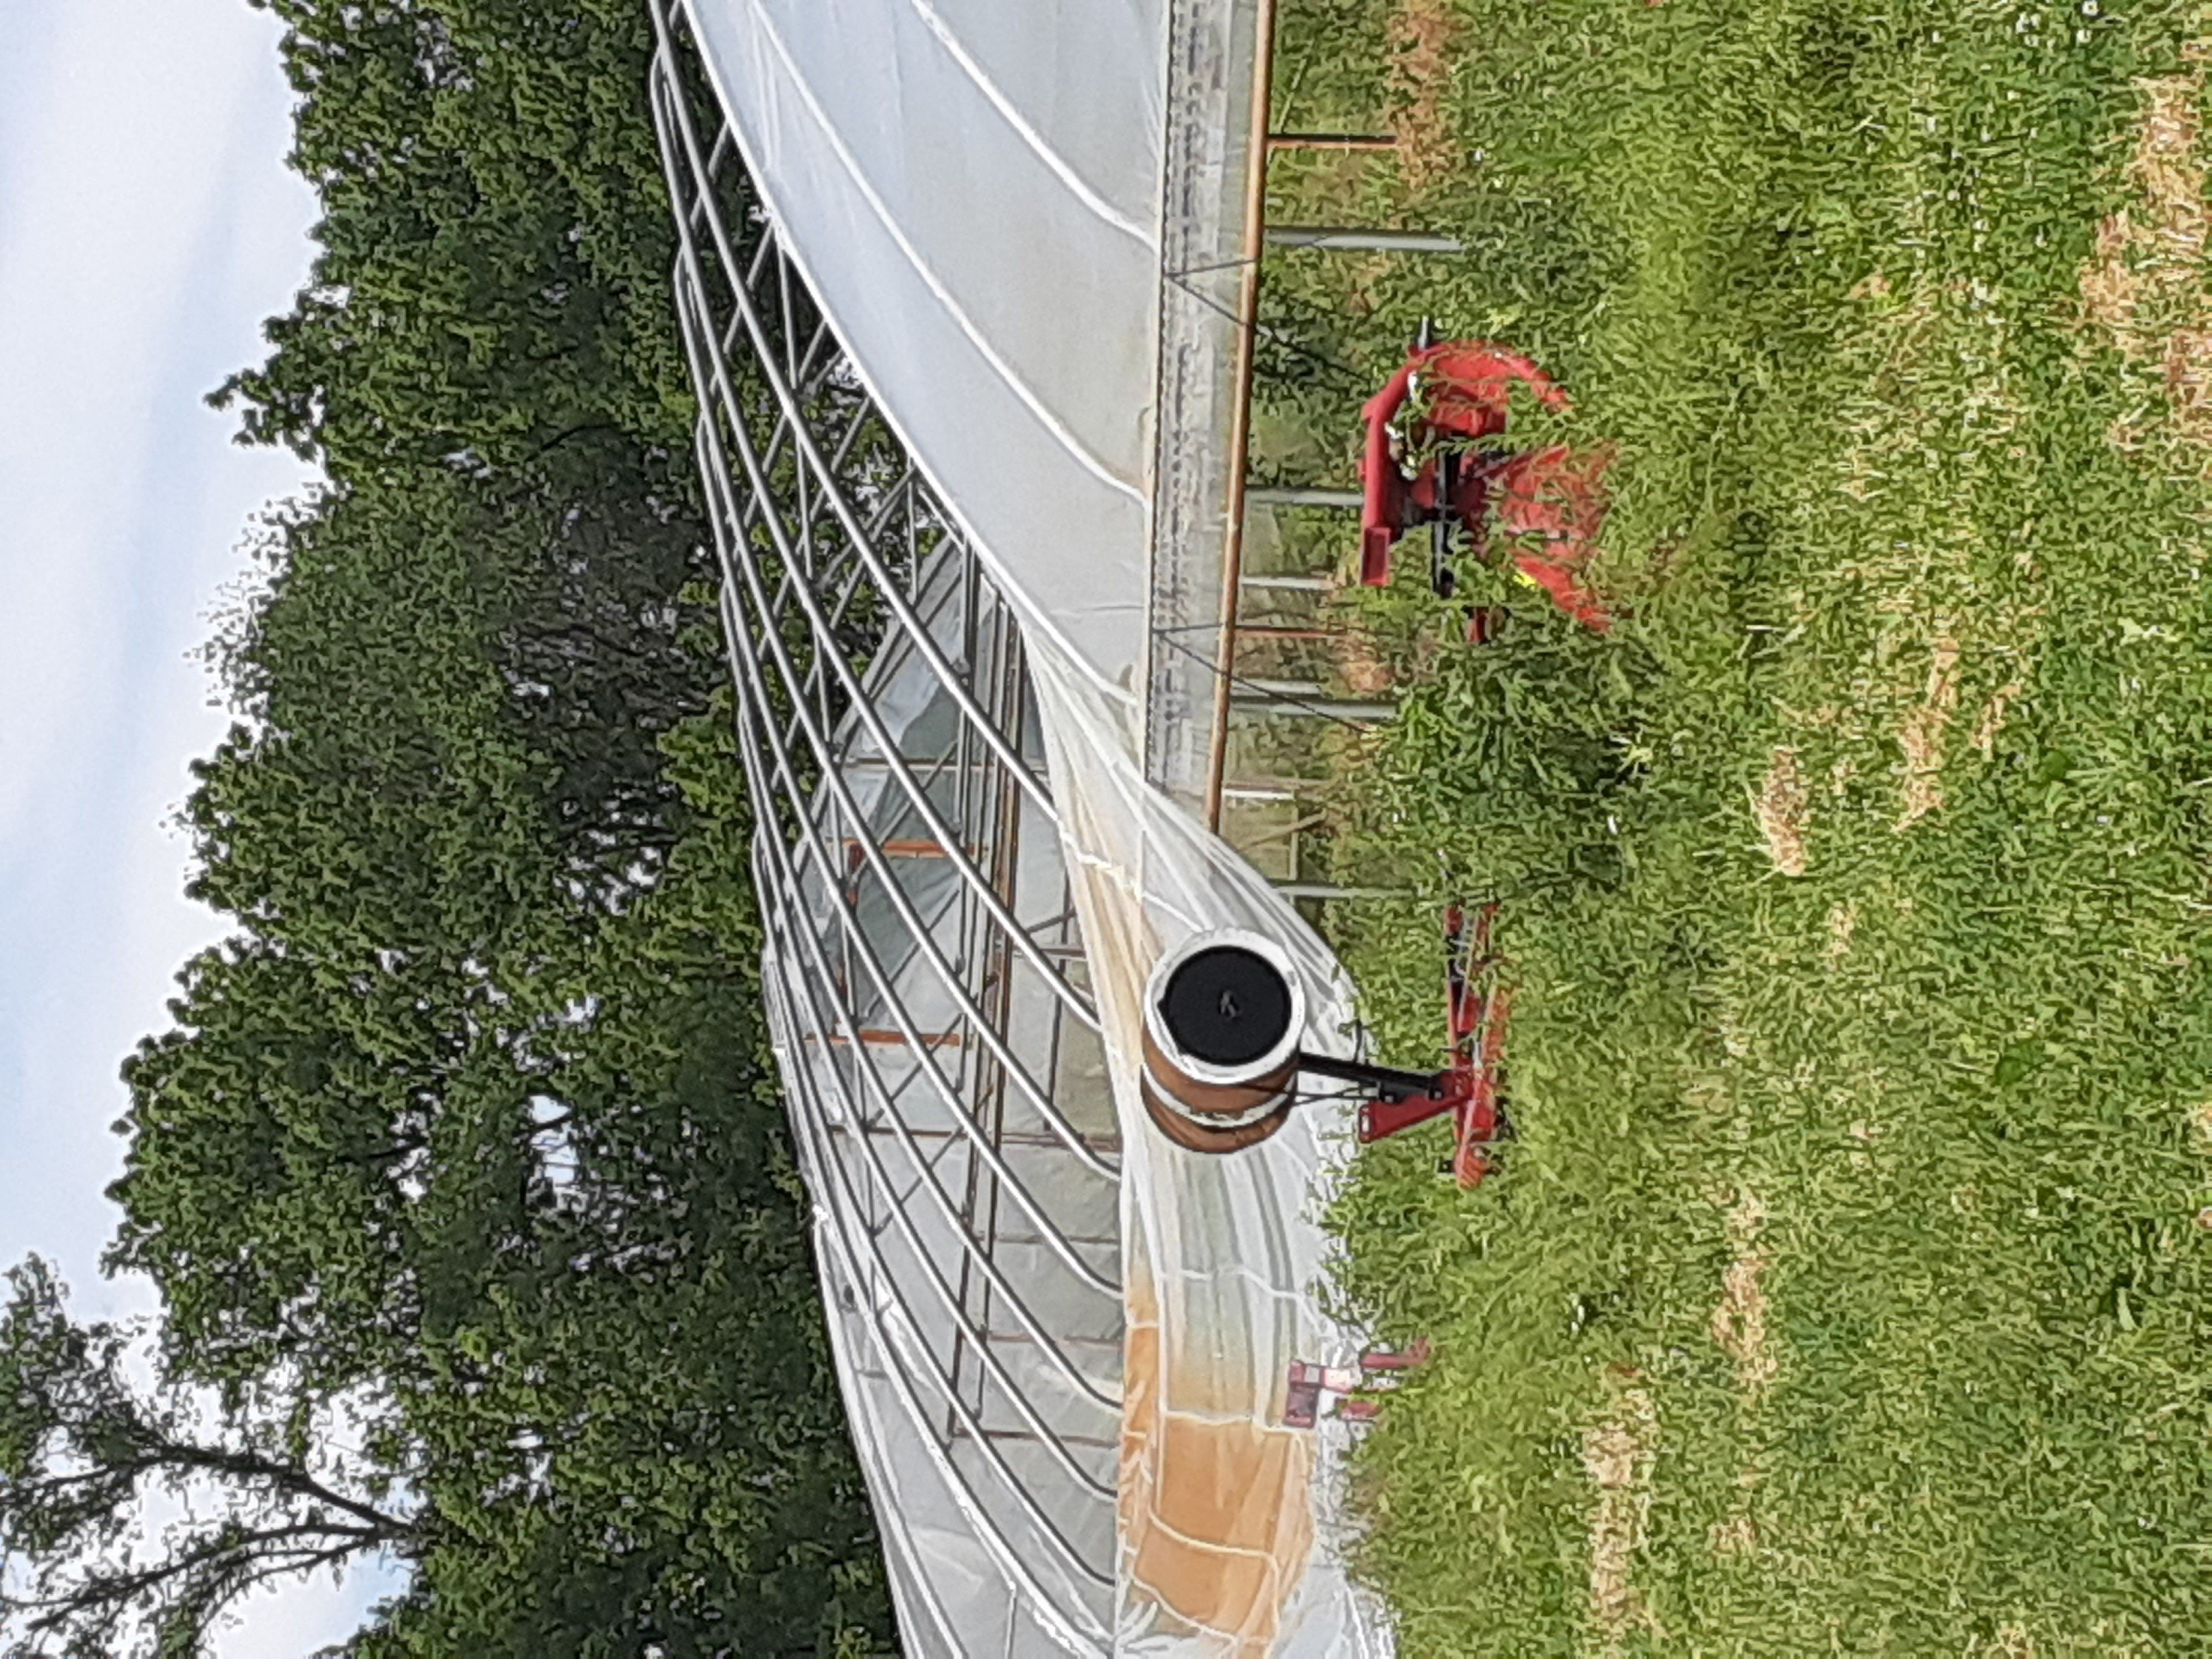 Farm Happenings for June 10, 2020